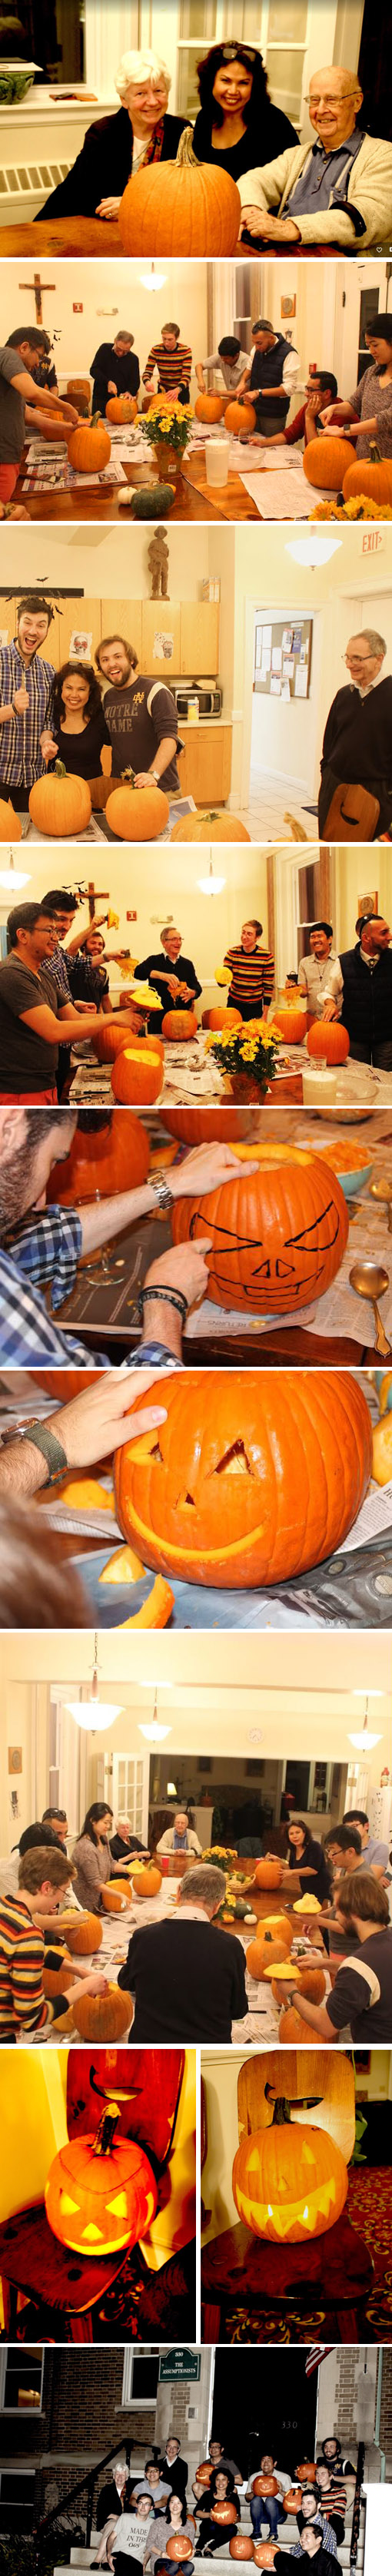 PUMPKIN CARVING PARTY AT THE CENTER